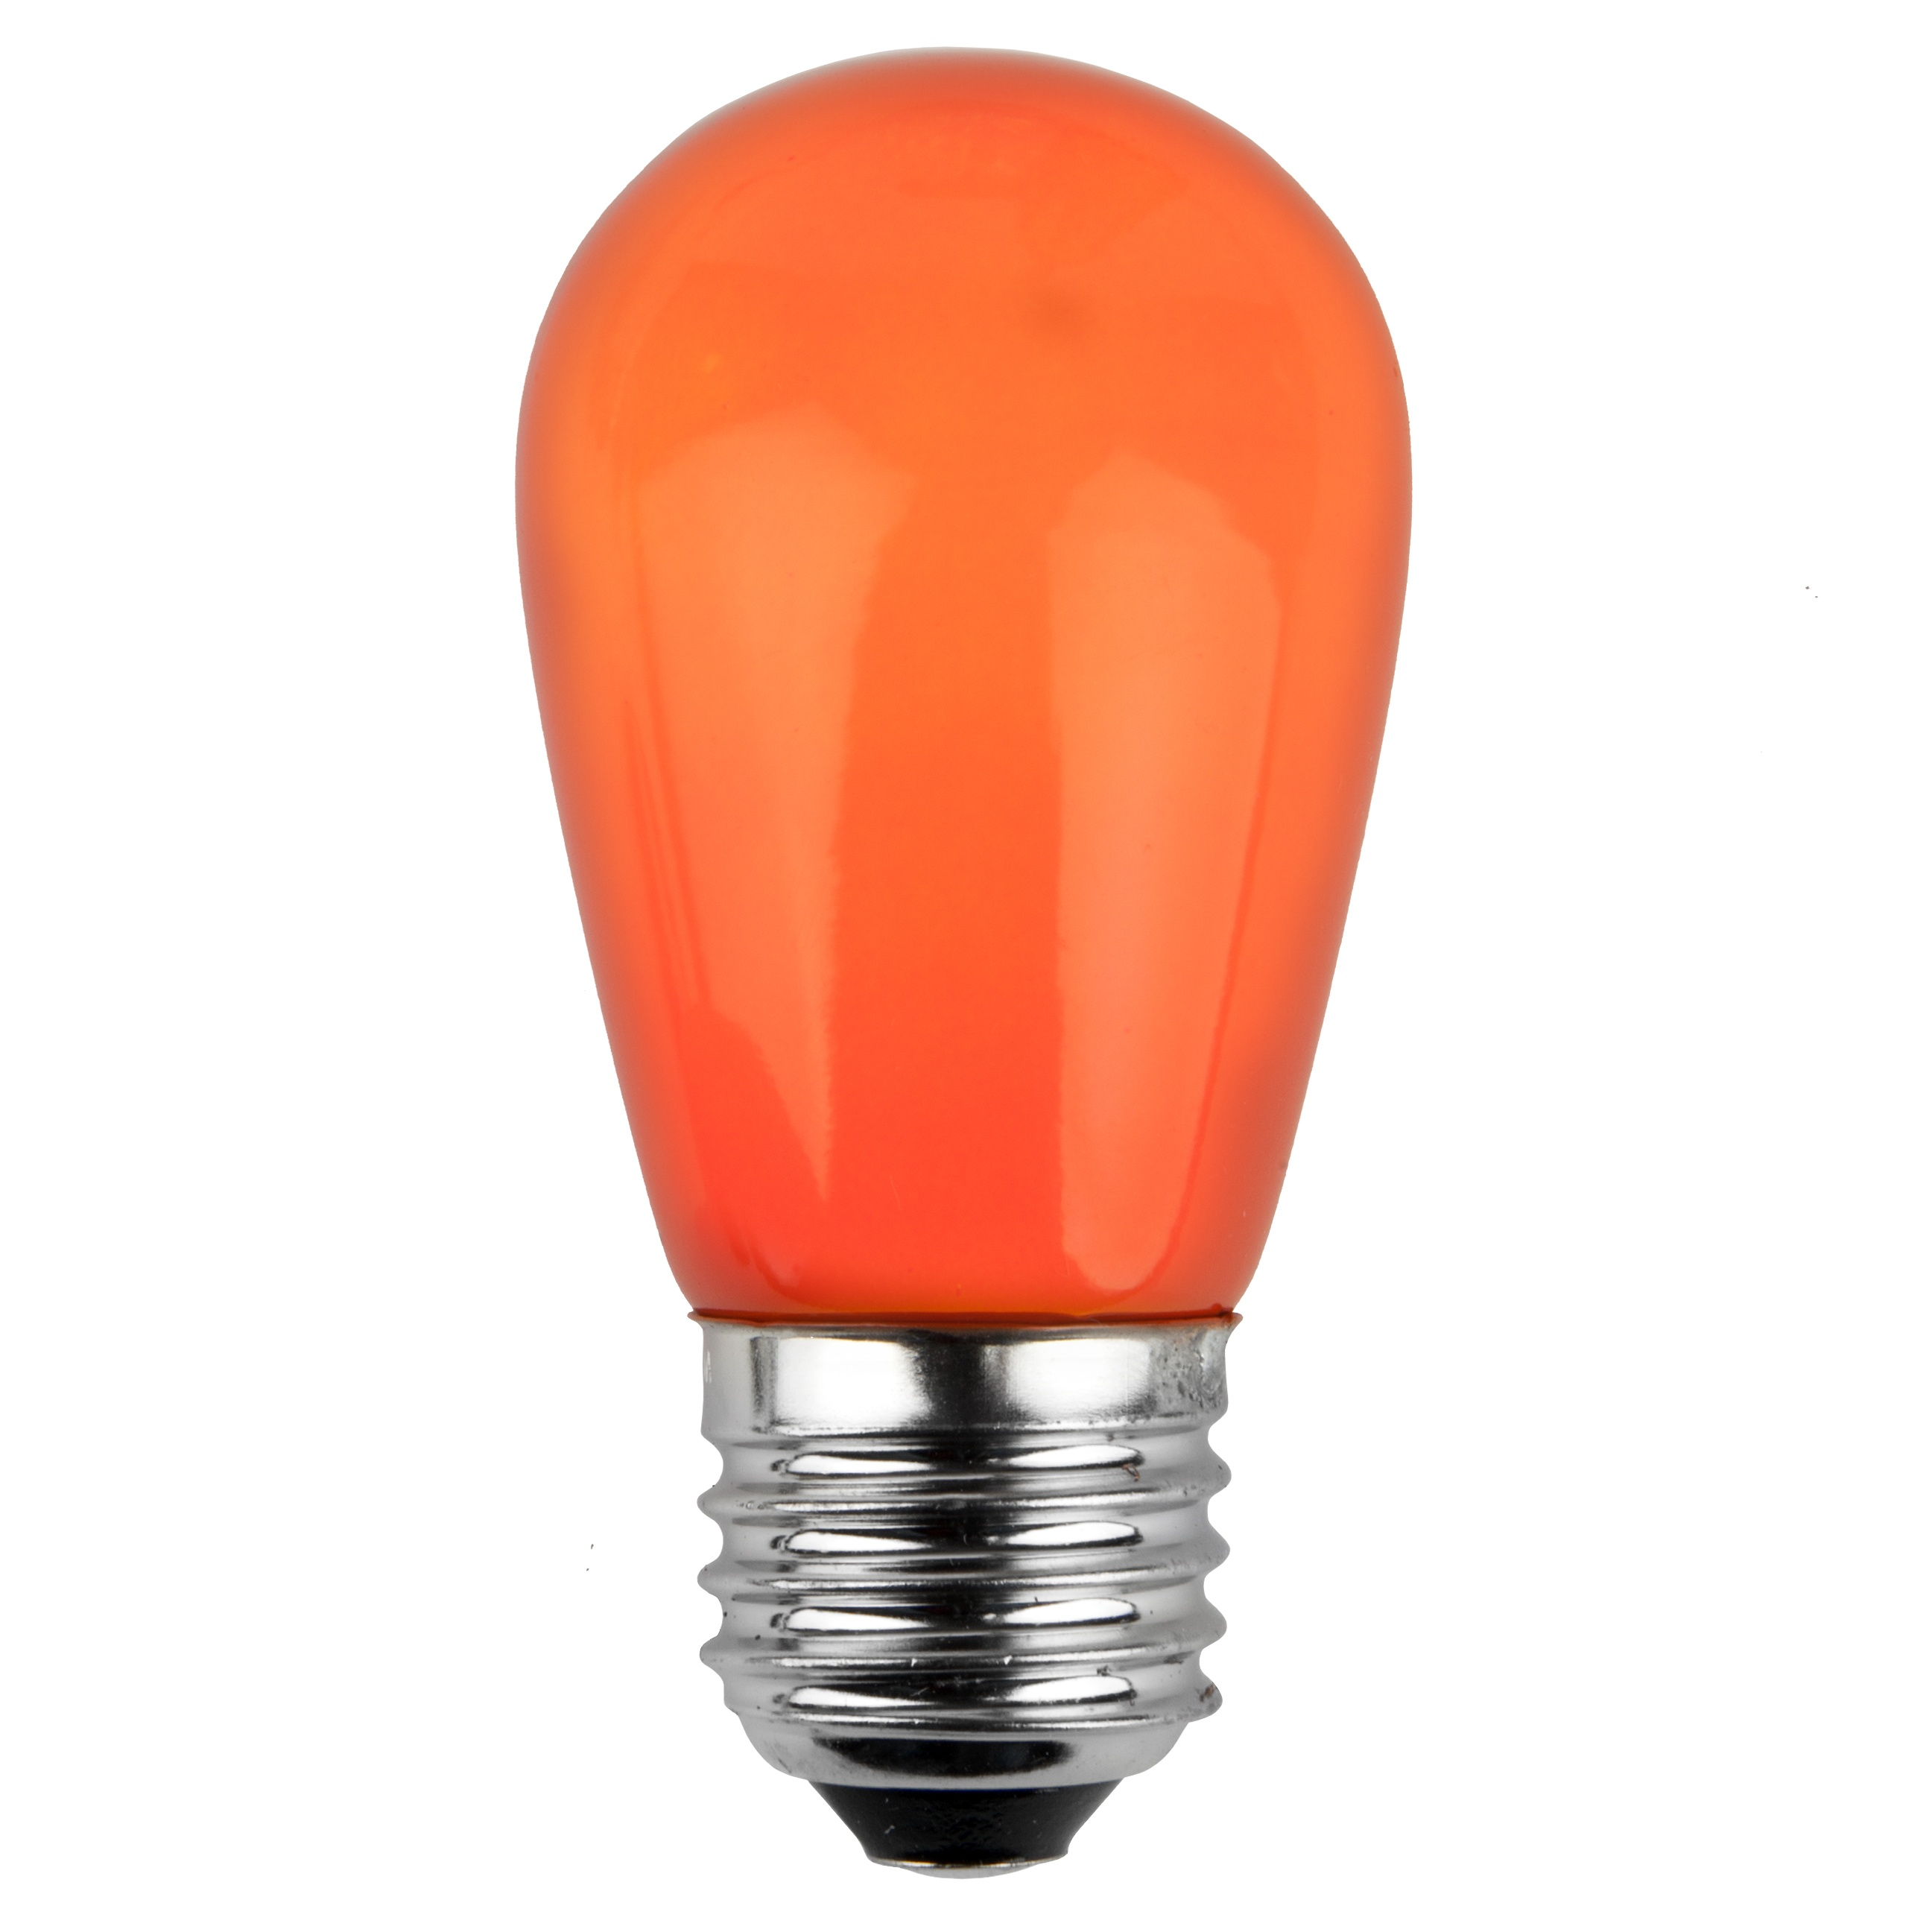 11S14 Opaque Orange Incandescent Sign Lamp